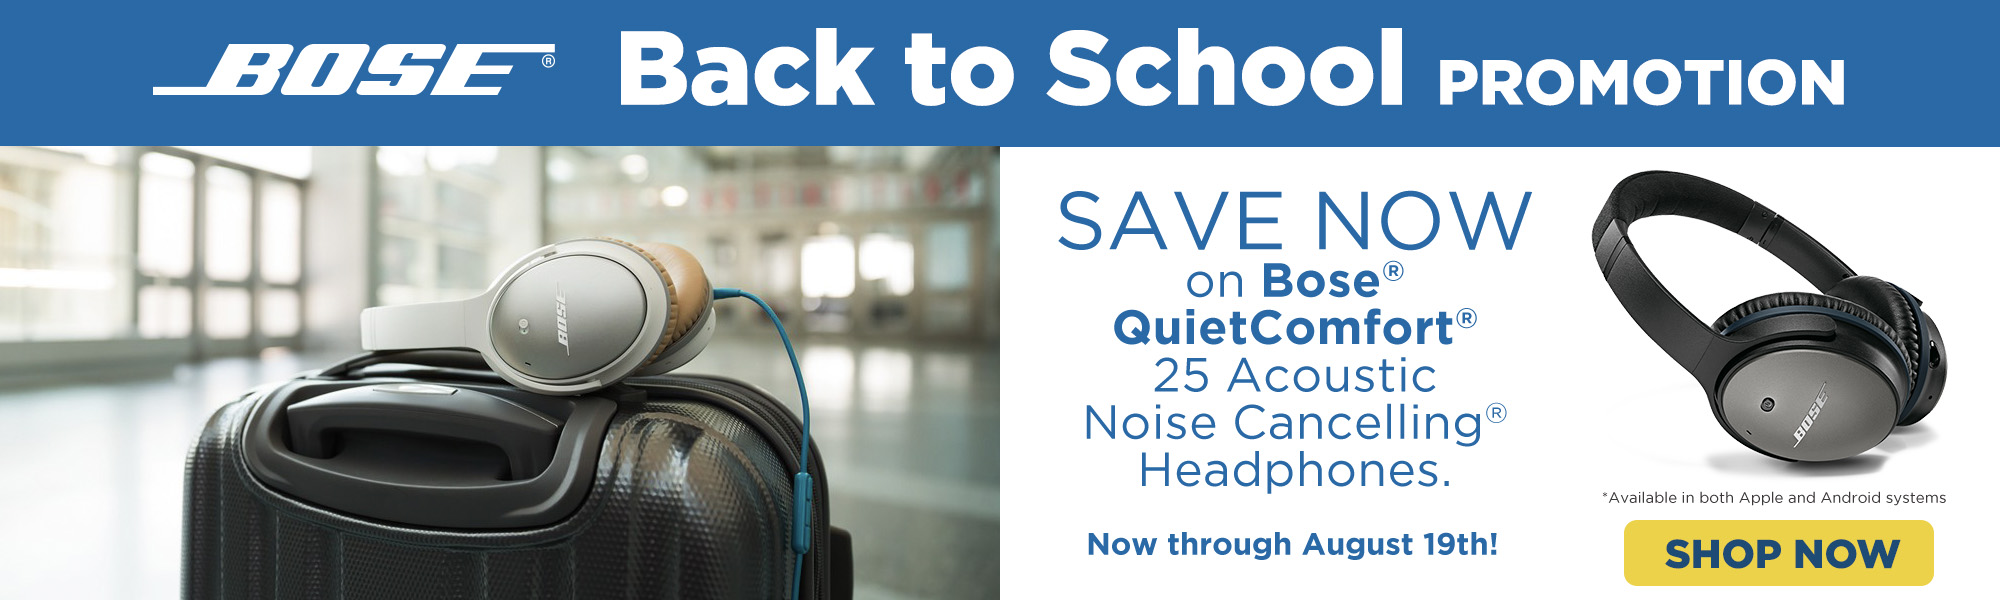 Bose Back to School